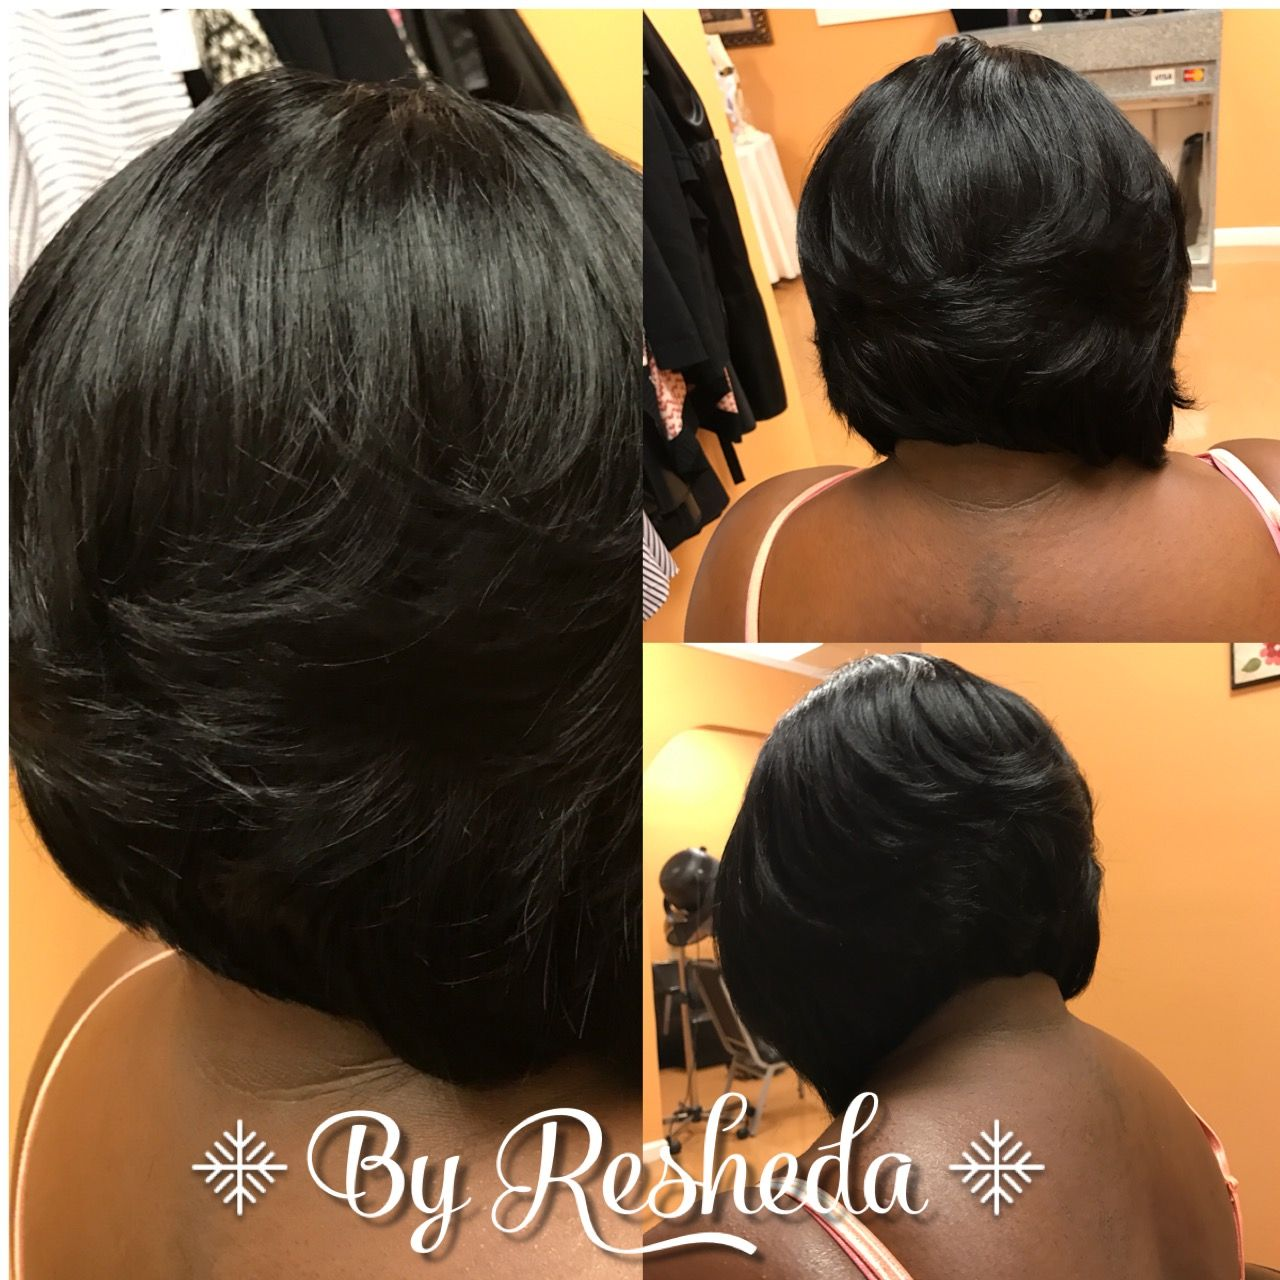 Swell Quick Weave Layered Bob Boblife Quickweavestyle Bobsbobs Hairstyles For Women Draintrainus